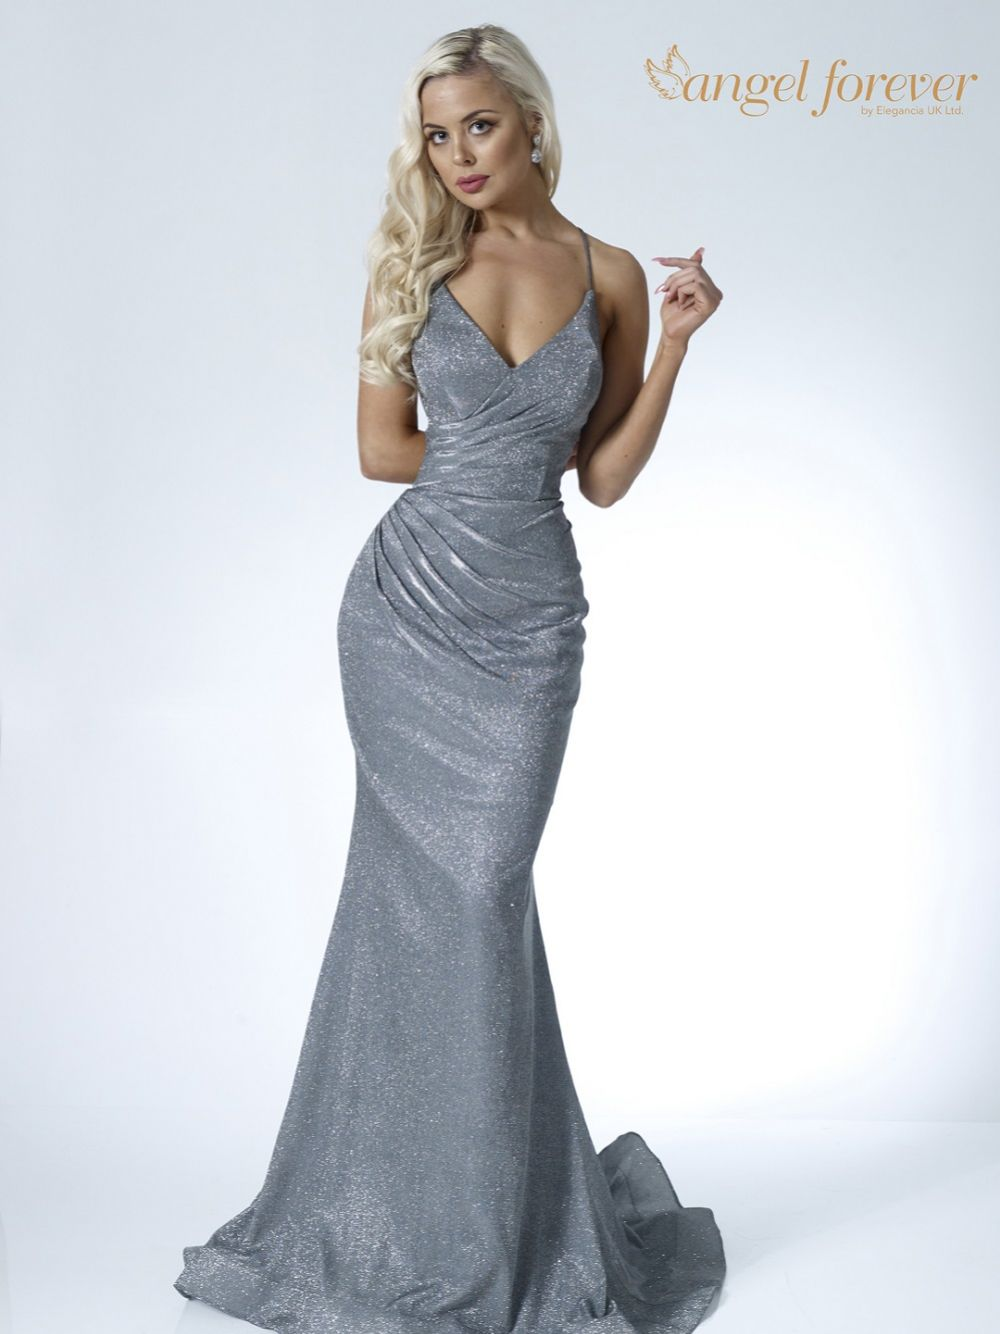 Angel Forever Shimmer Fabric V Neck Fitted Backless Prom Dress (Charcoal)